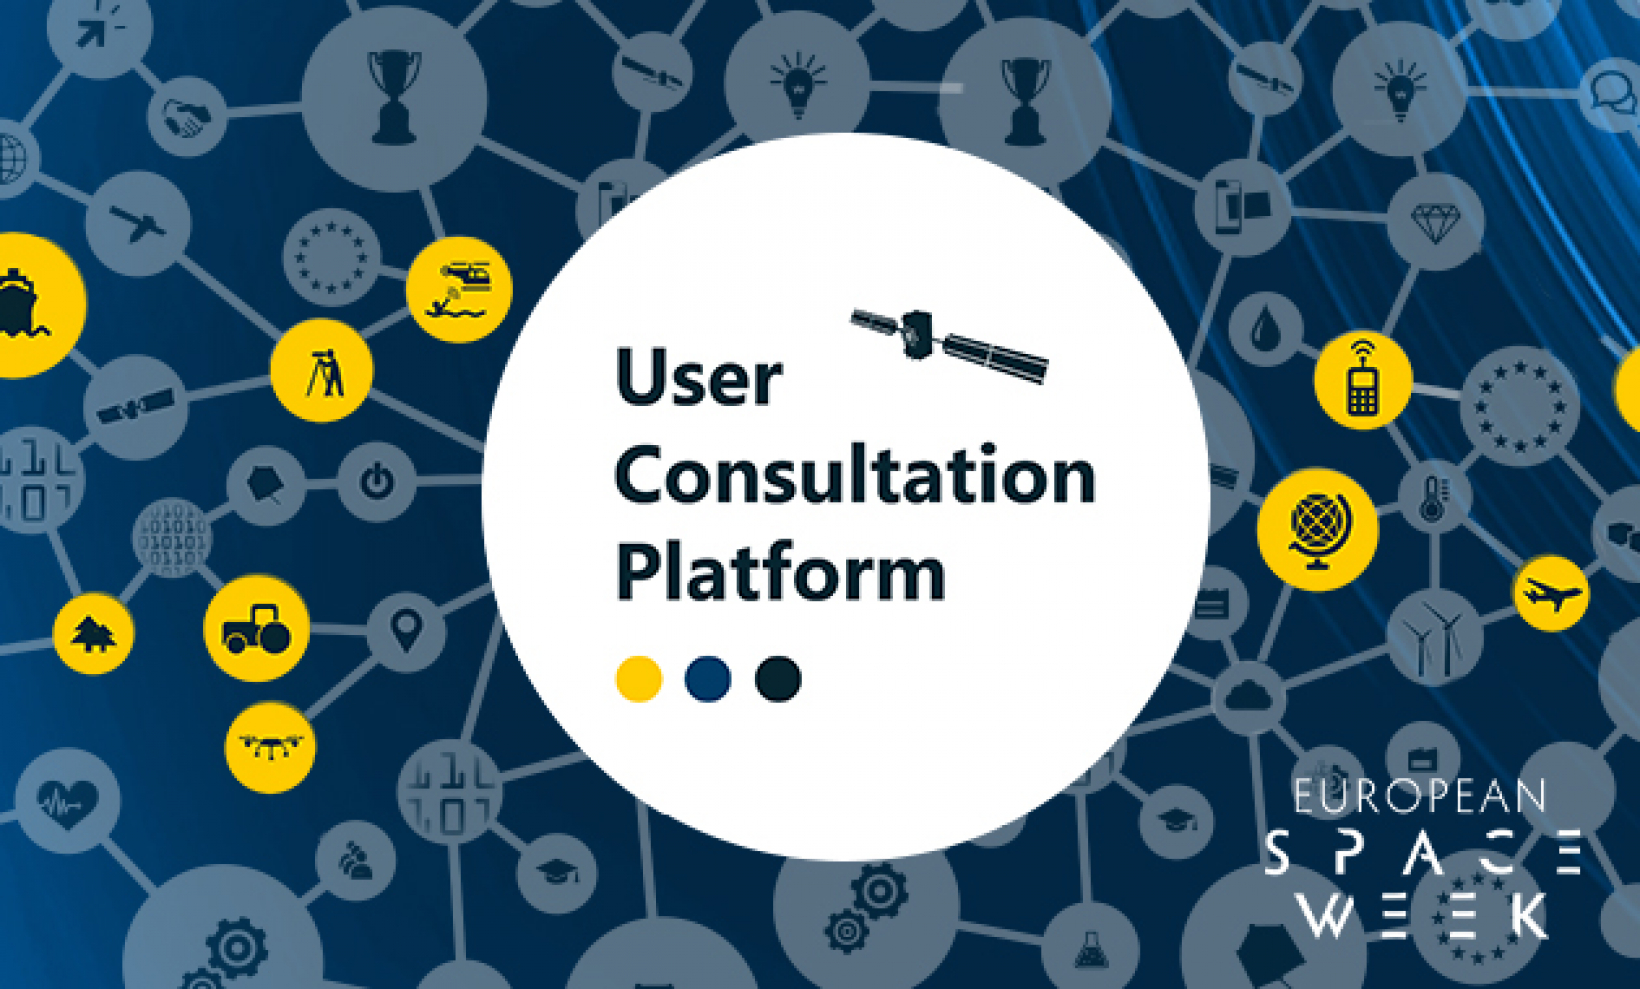 The User Consultation Platform (UCP) is a biennial event involving a wide range of users from 12 different market segments.